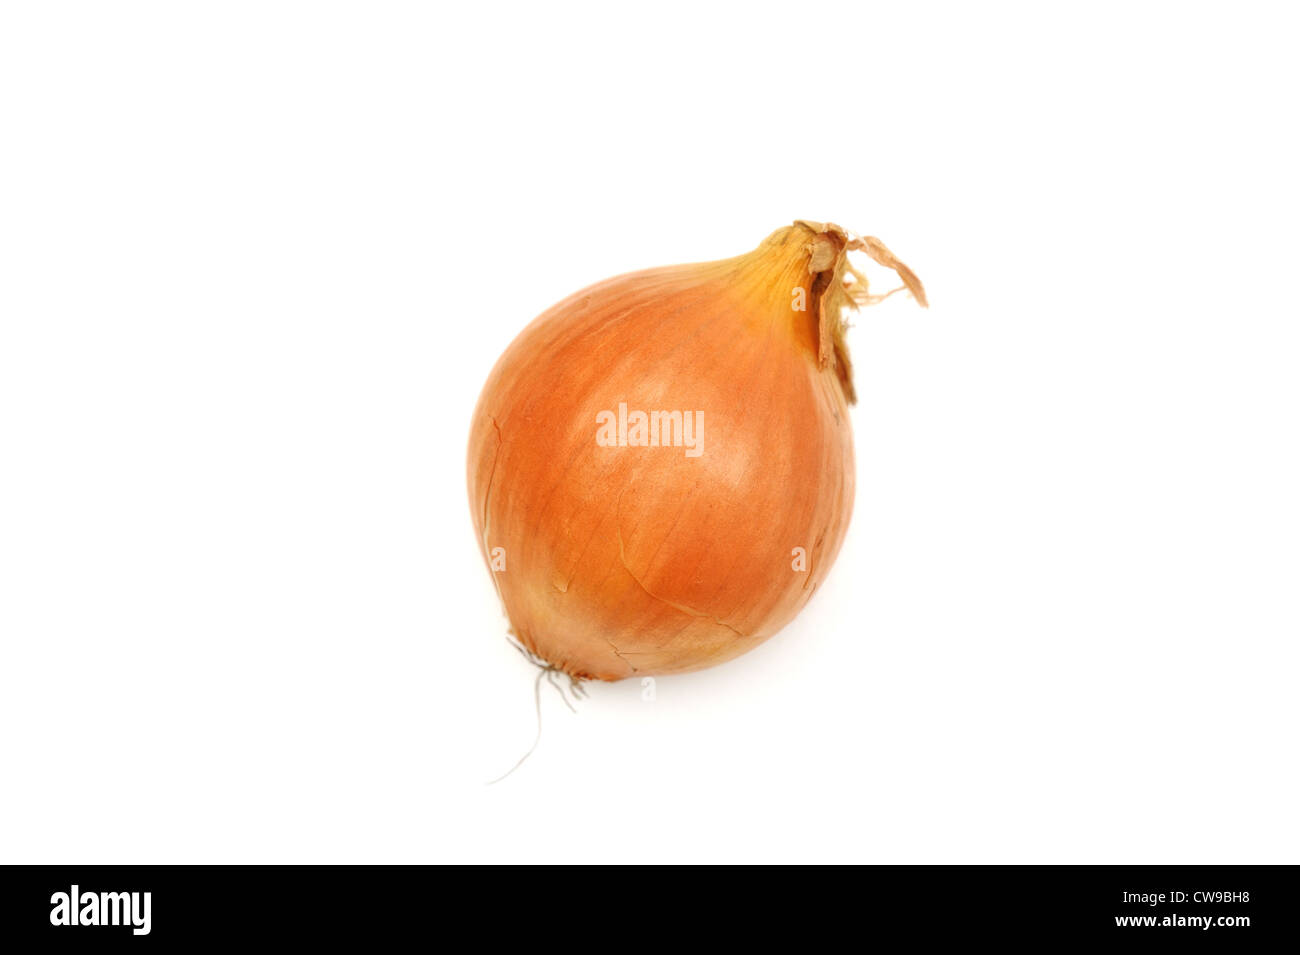 a cooking onion - Stock Image